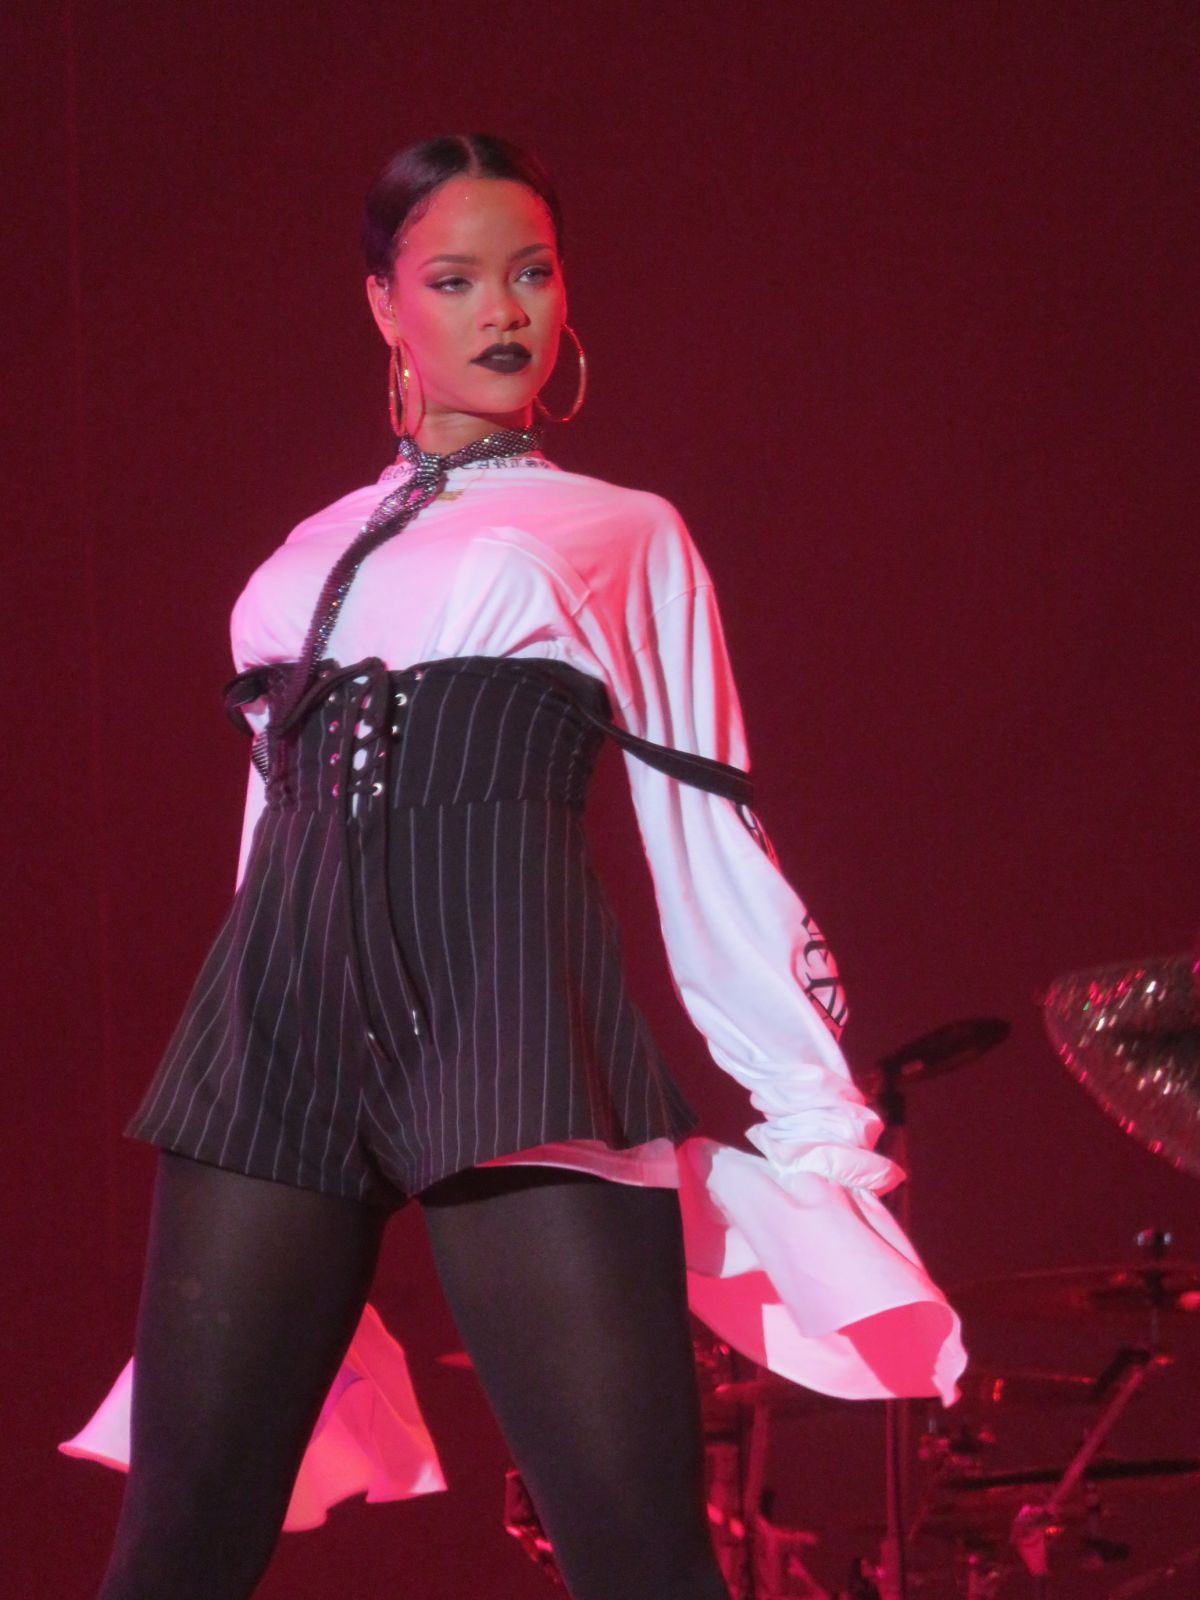 RIHANNA Performs at Global Citizen Festival in Central Park in New York 09/24/2016